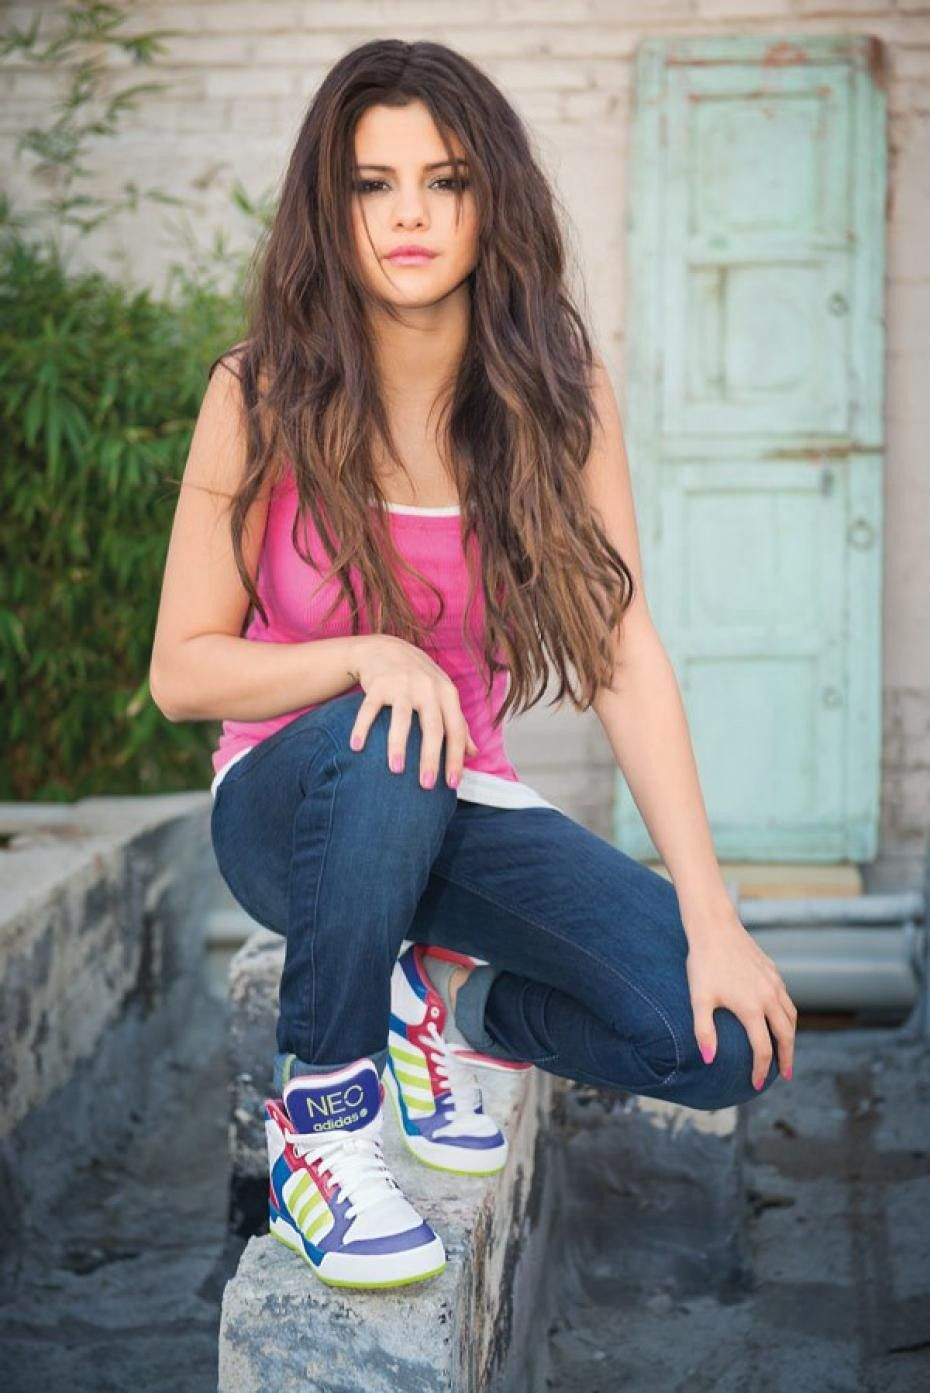 Latest Images of Selena Gomez Download New Wallpapers HD Selena 930x1393